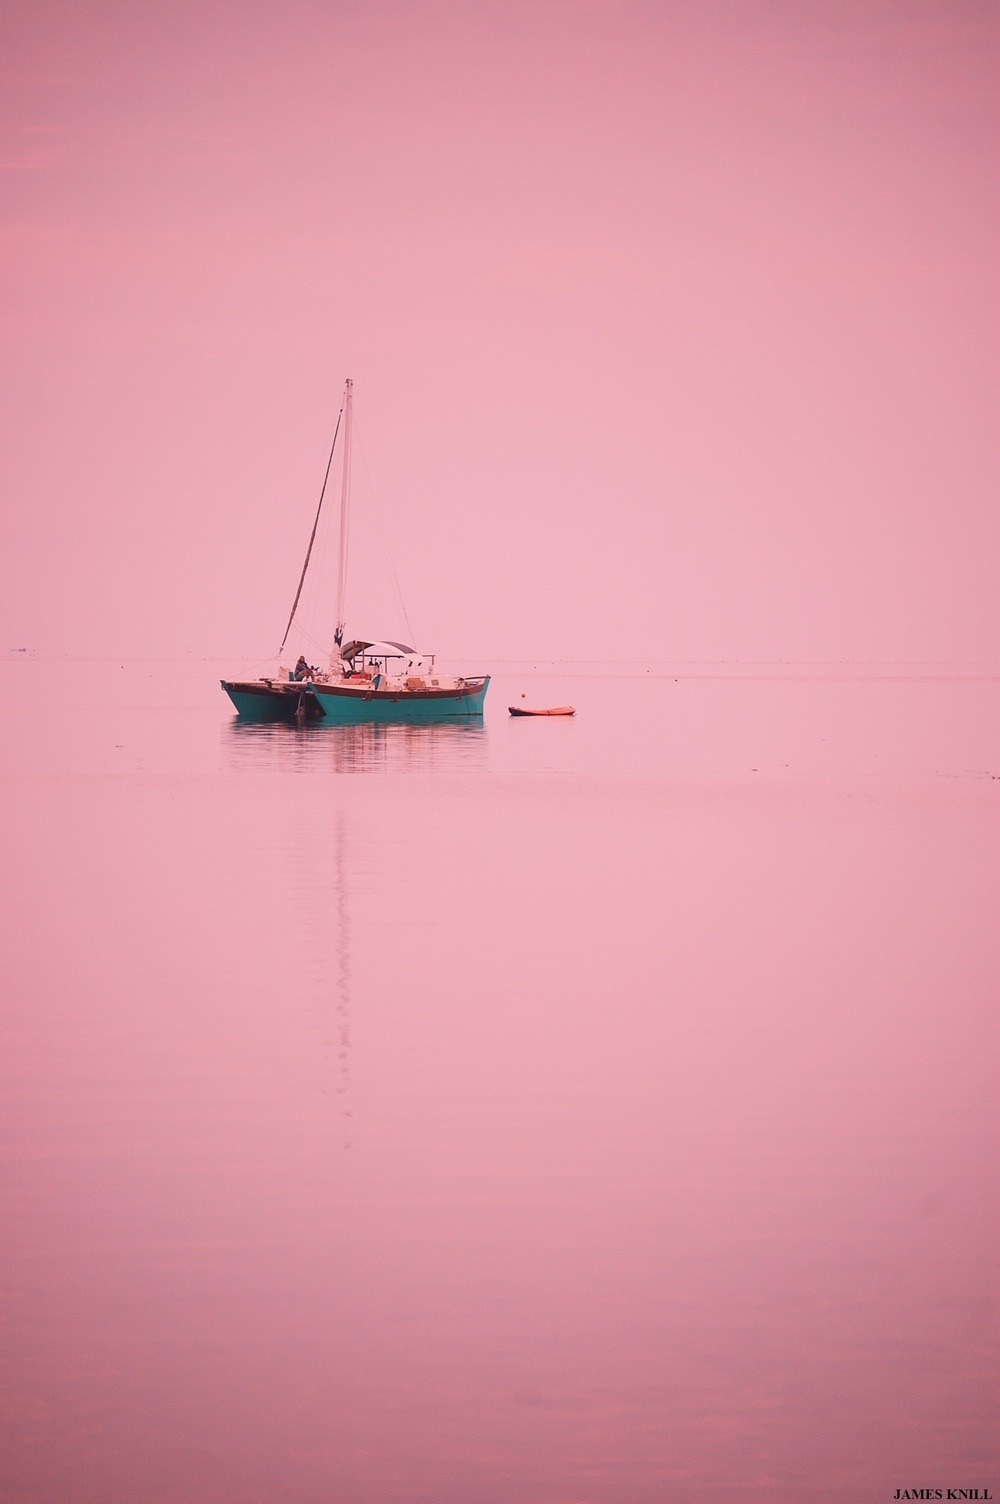 Boat in Pink Vertical